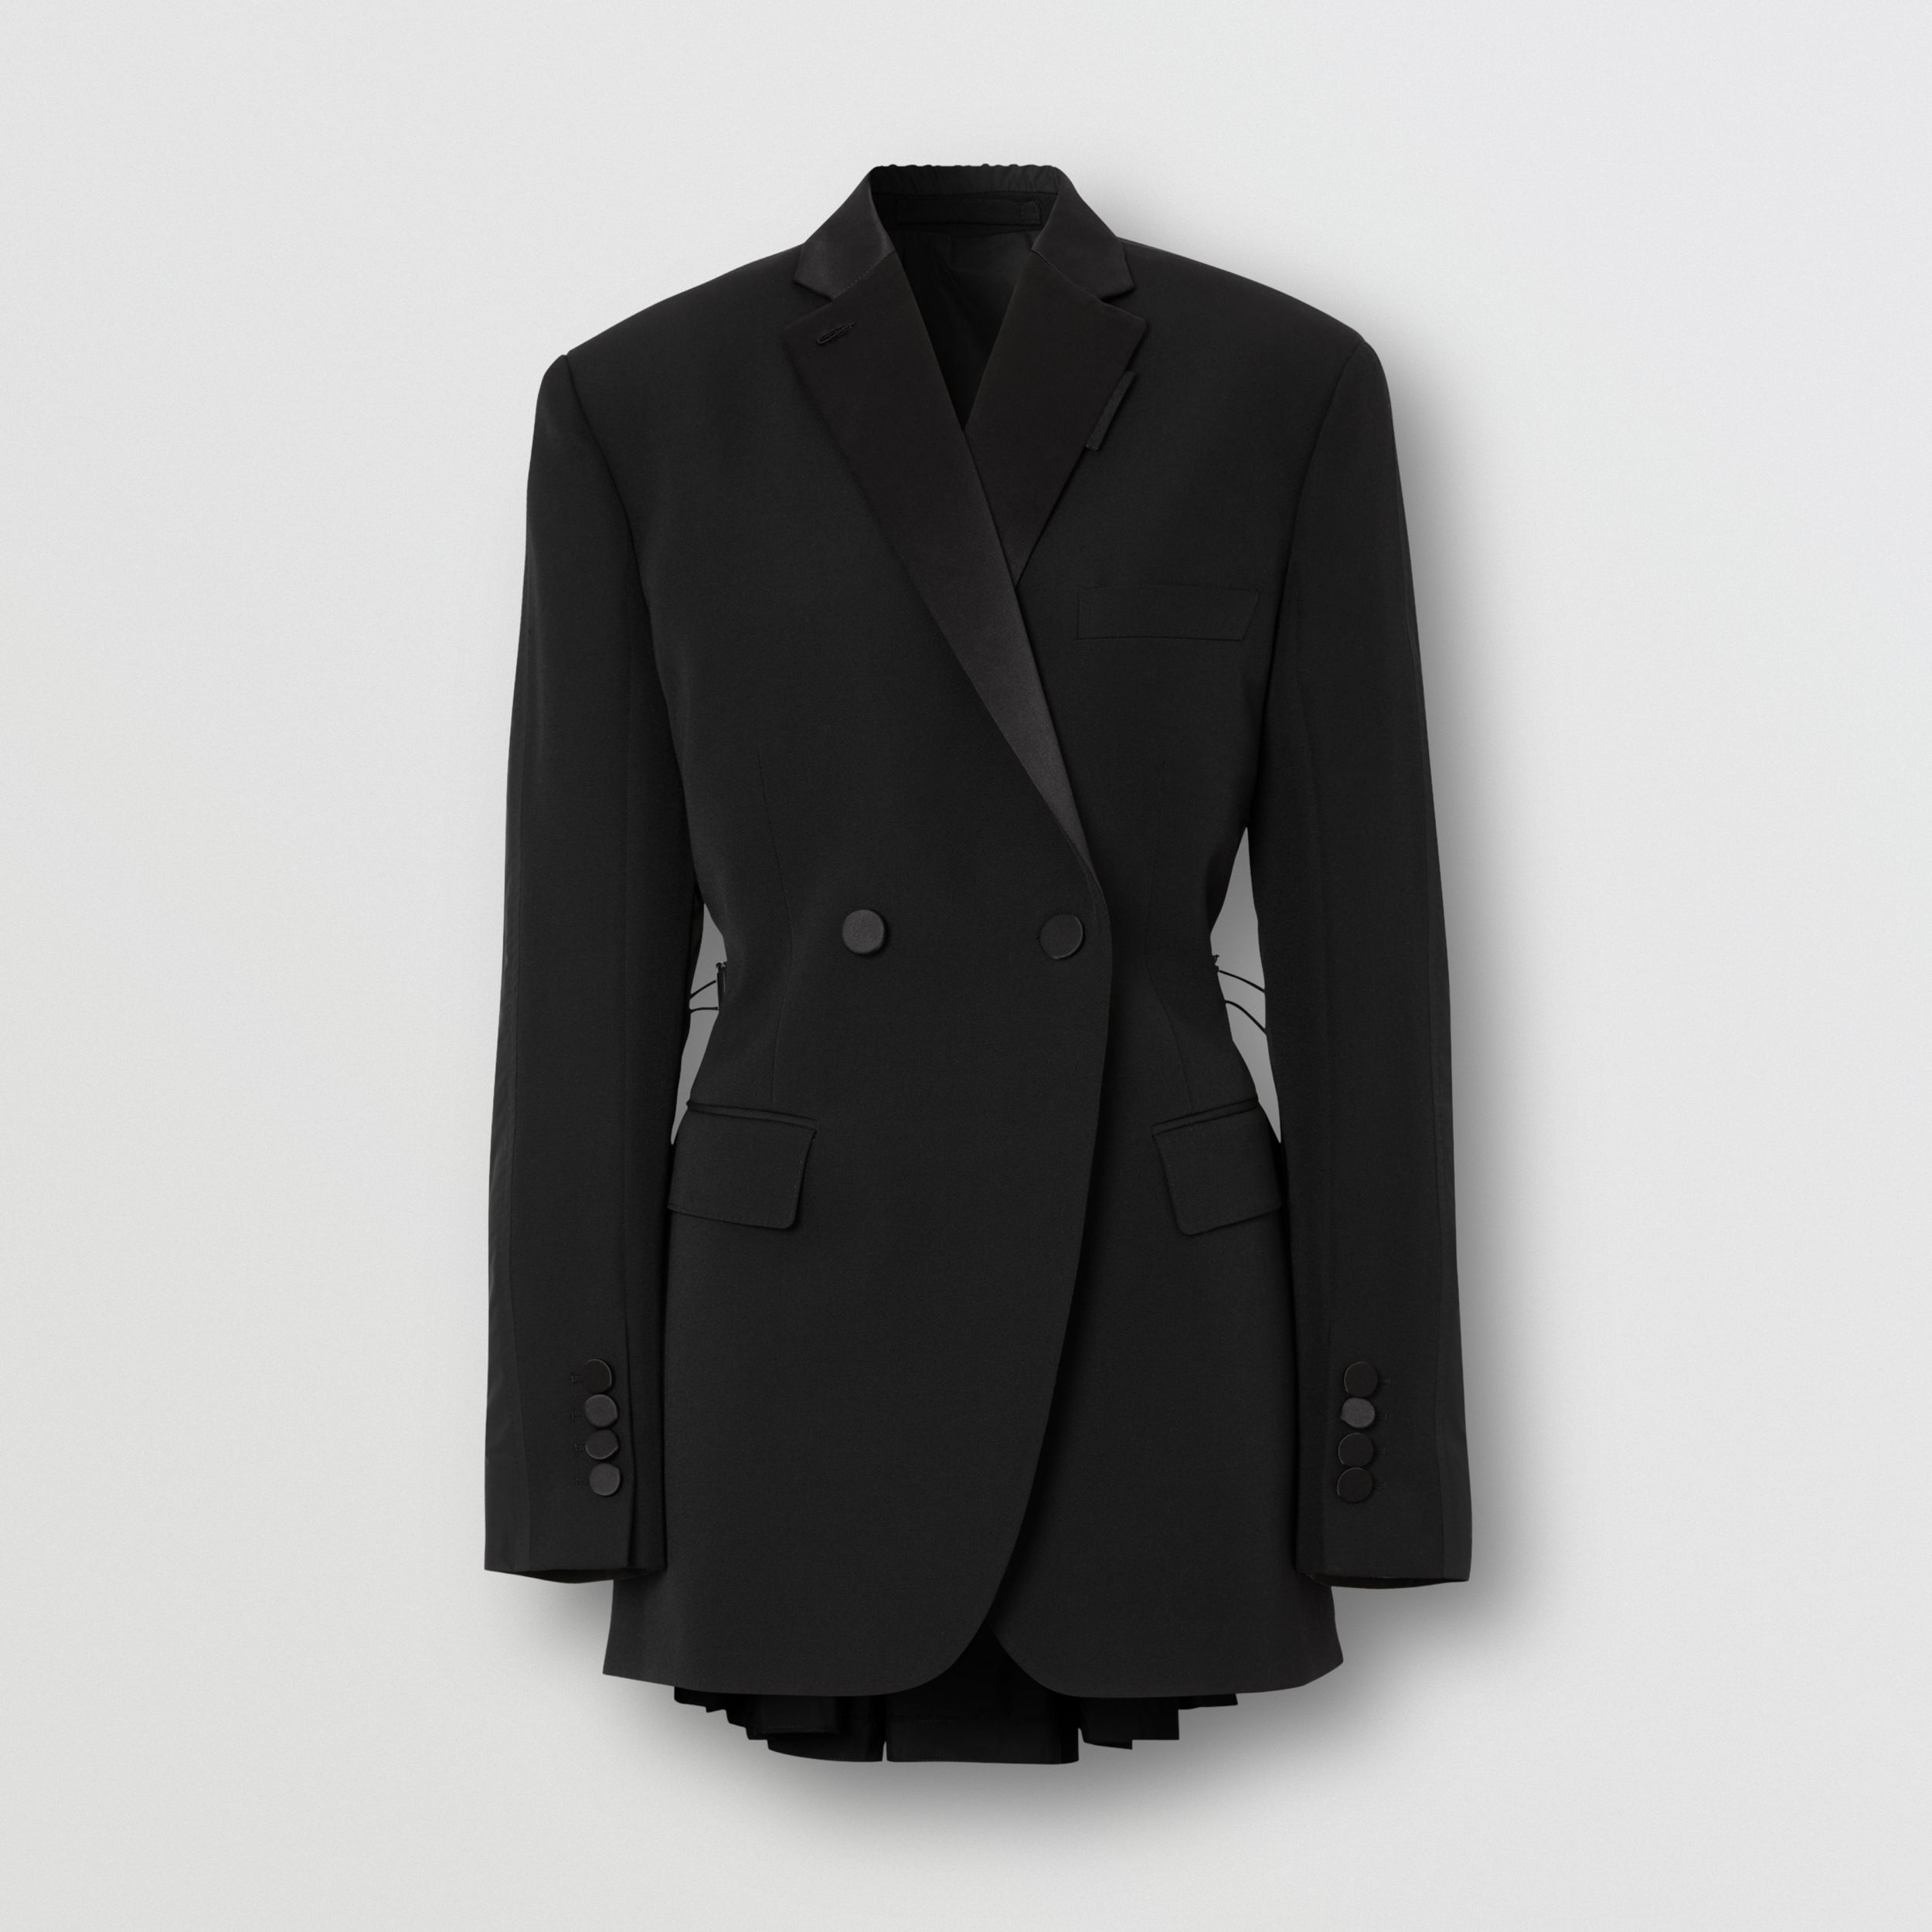 Cut-out Back Wool and Taffeta Tuxedo Jacket in Black - Women | Burberry Hong Kong S.A.R. - 4